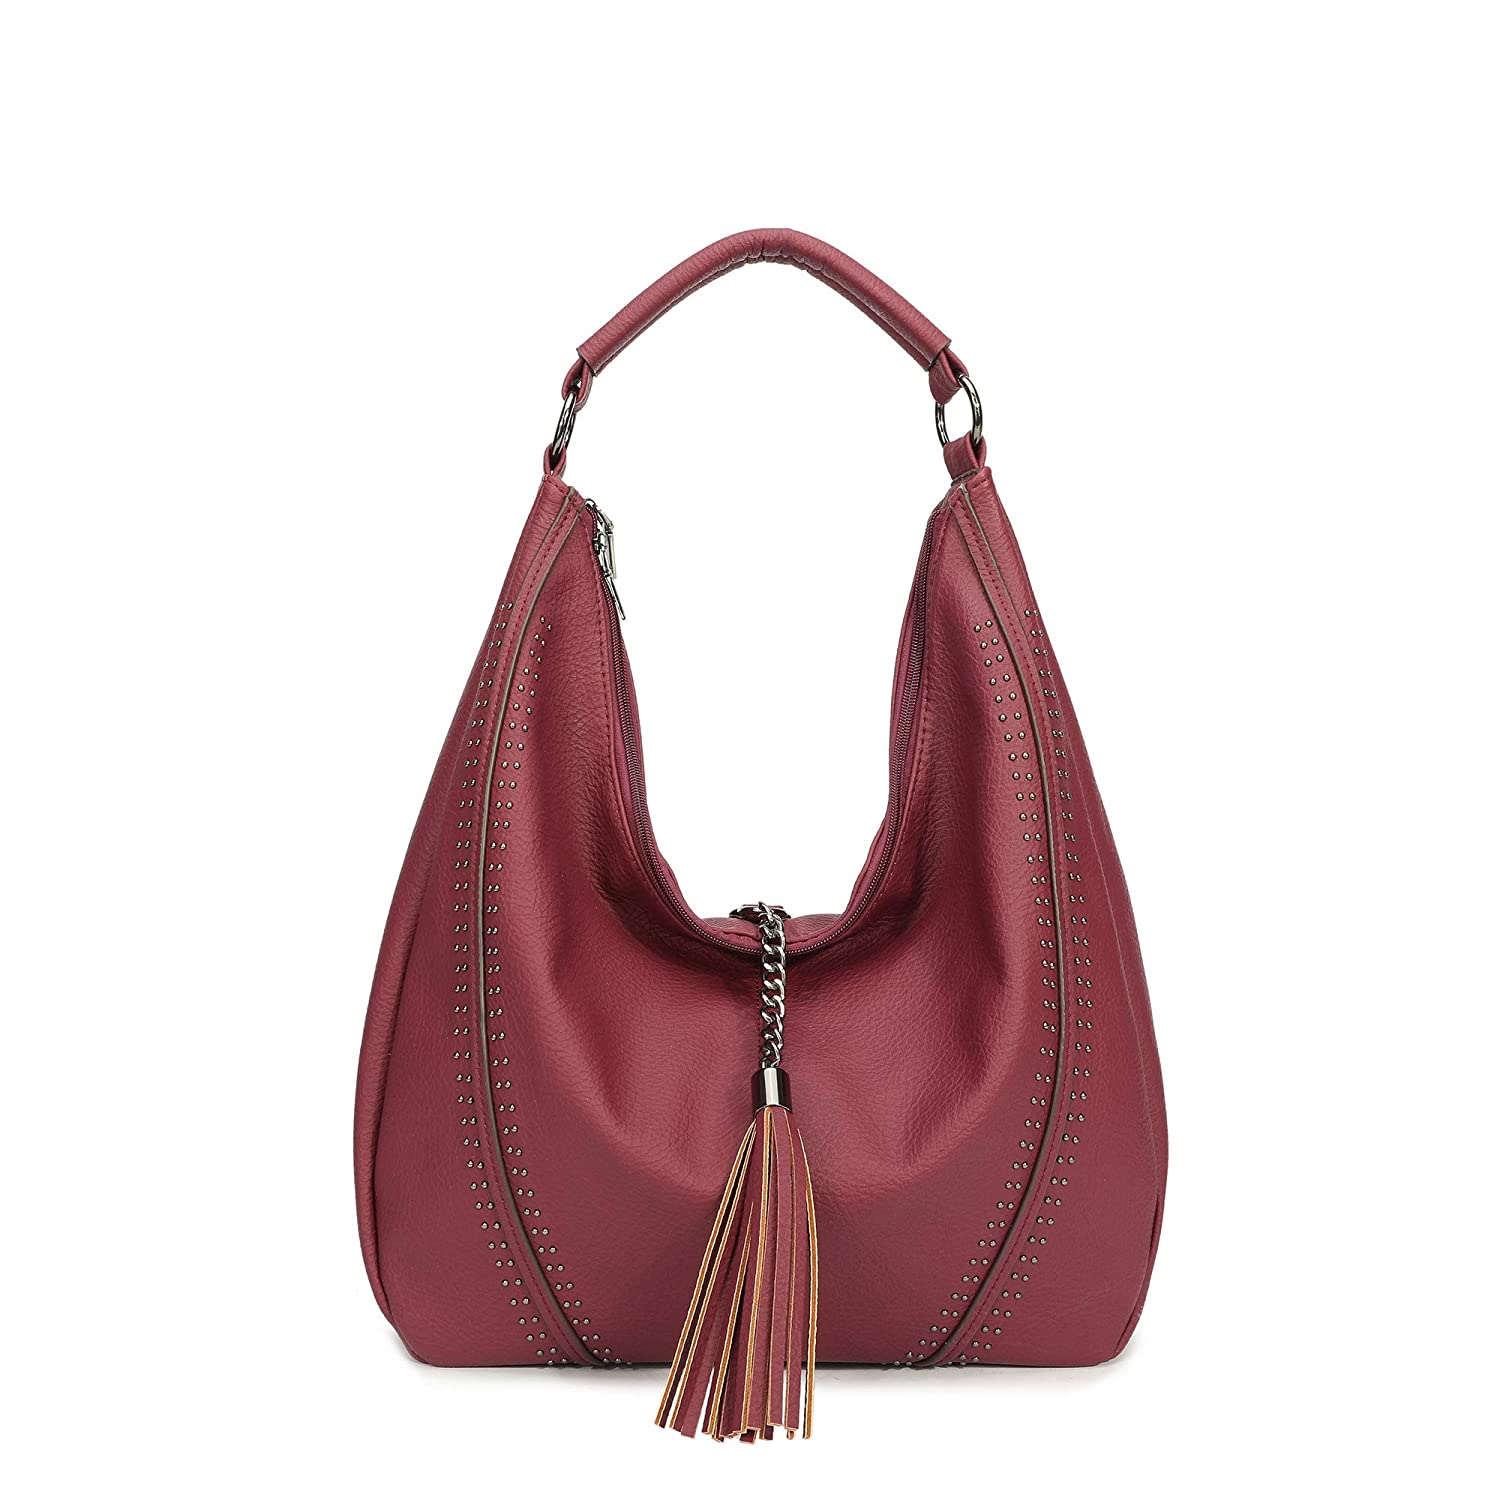 Green Hobo Shoulder Bags Large Compacity Tote Purses With Tassel Decoration Hobo Shoulder Bags Of PU Leather Large Compacity Tote Purses With Tassel Decoration Handbags for Women Soye